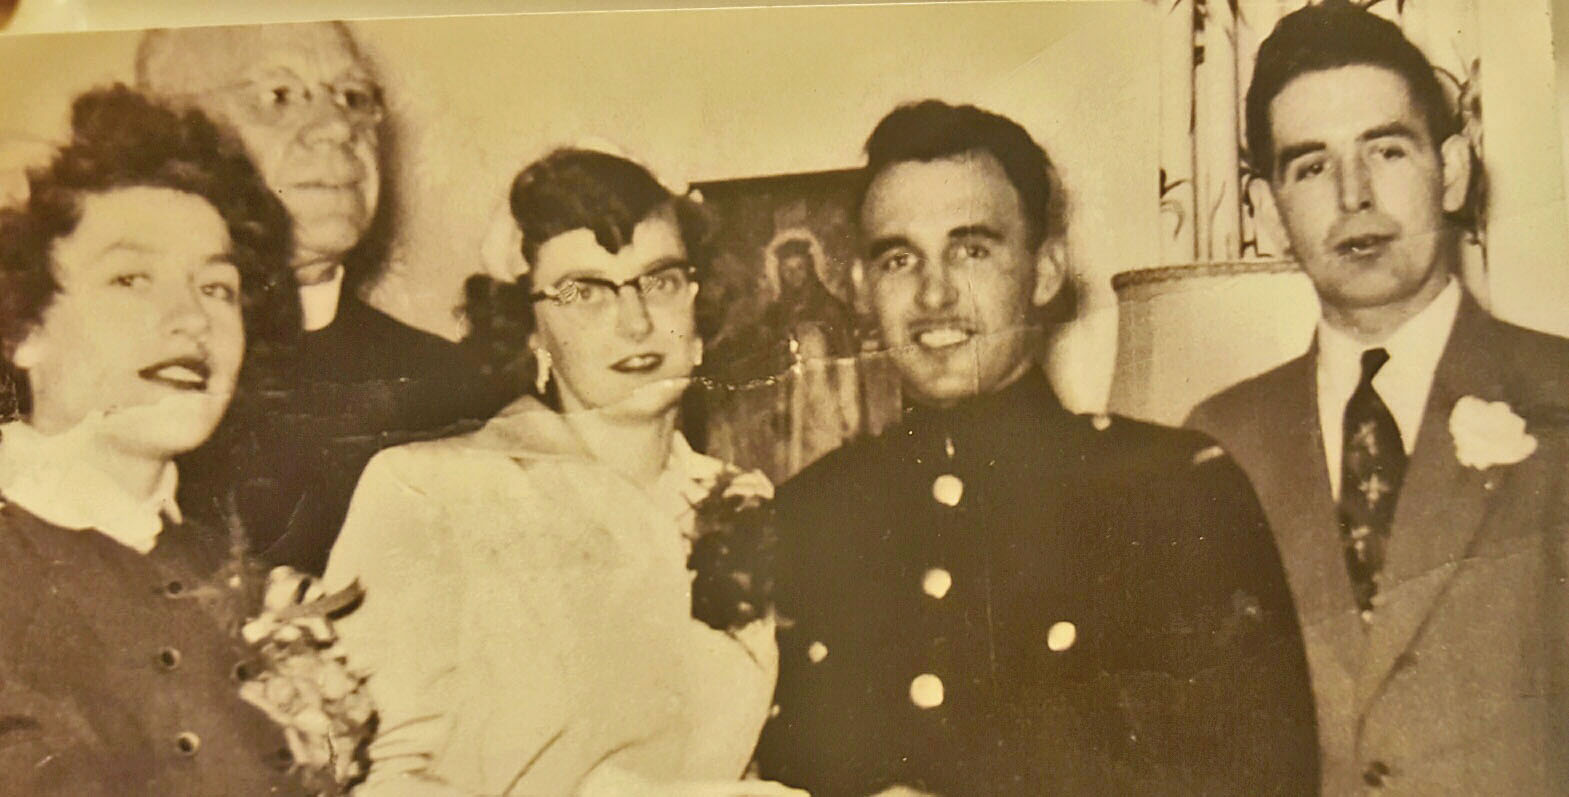 Earl met his wife Elizabeth while working in a canning factory in Wellington, one of several jobs he held down before joining the Canadian military. Photo courtesy the Pearson Family 2016